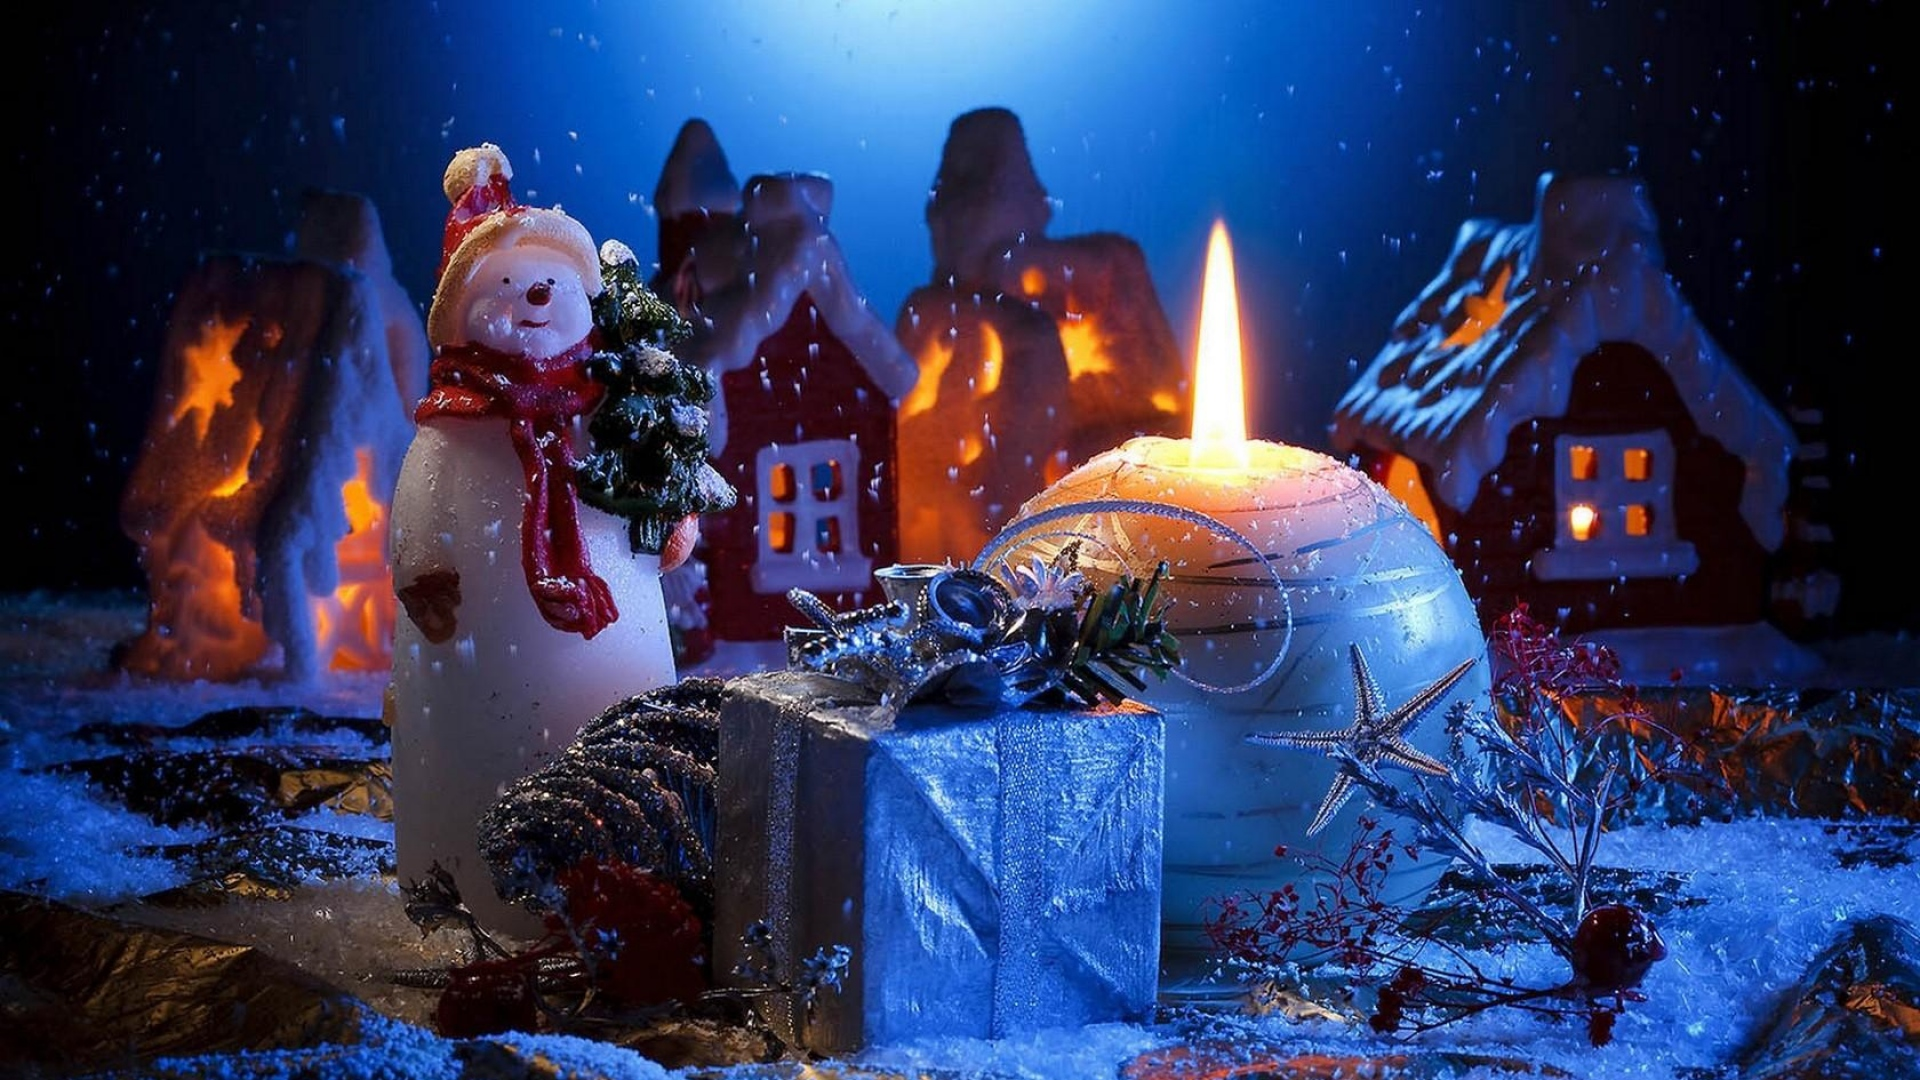 Download Wallpaper 1920x1080 Candle Snowman Gift Home Holiday New Year Christmas Full HD 1080p Background